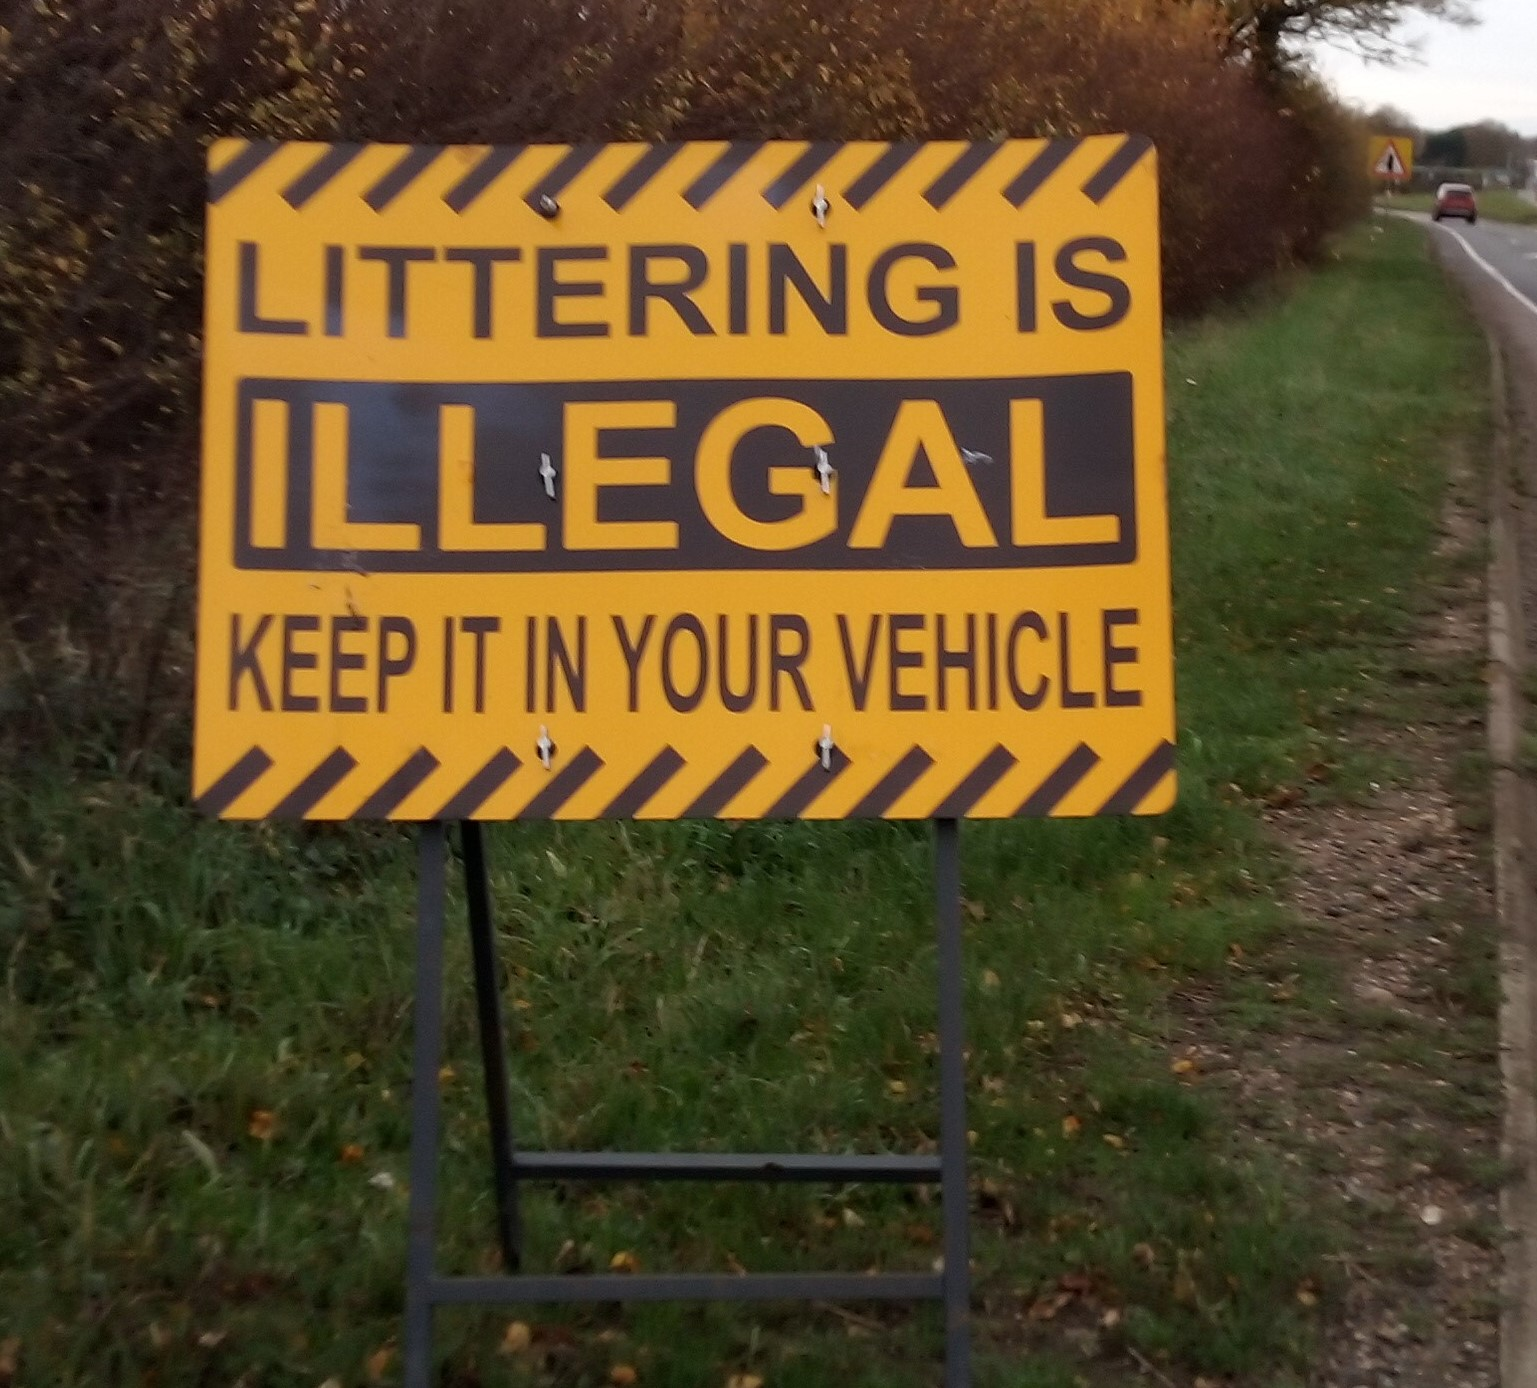 Littering is illegal keep it in your vehicle